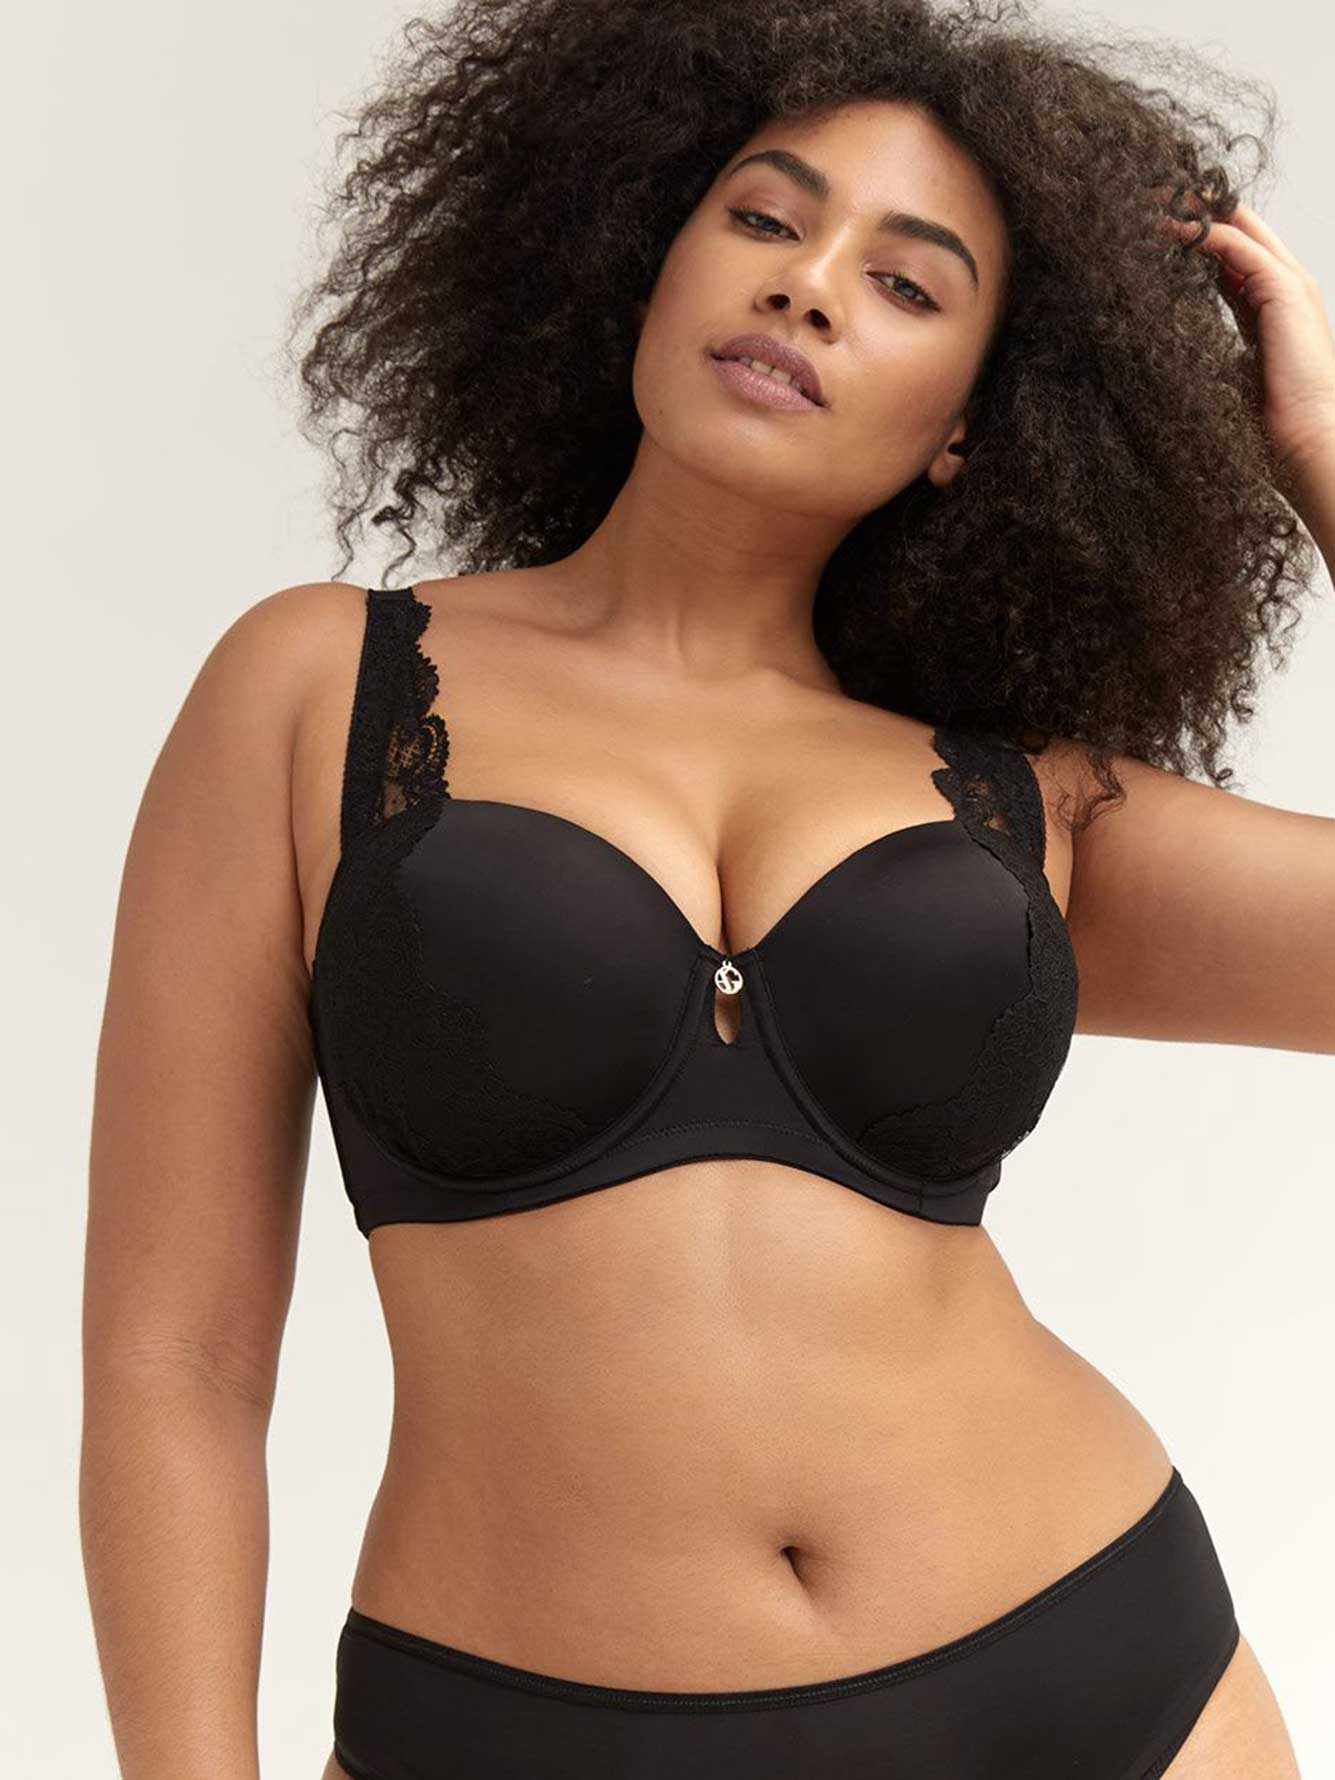 Lace Embellished Phenomenon Bra - Ashley Graham